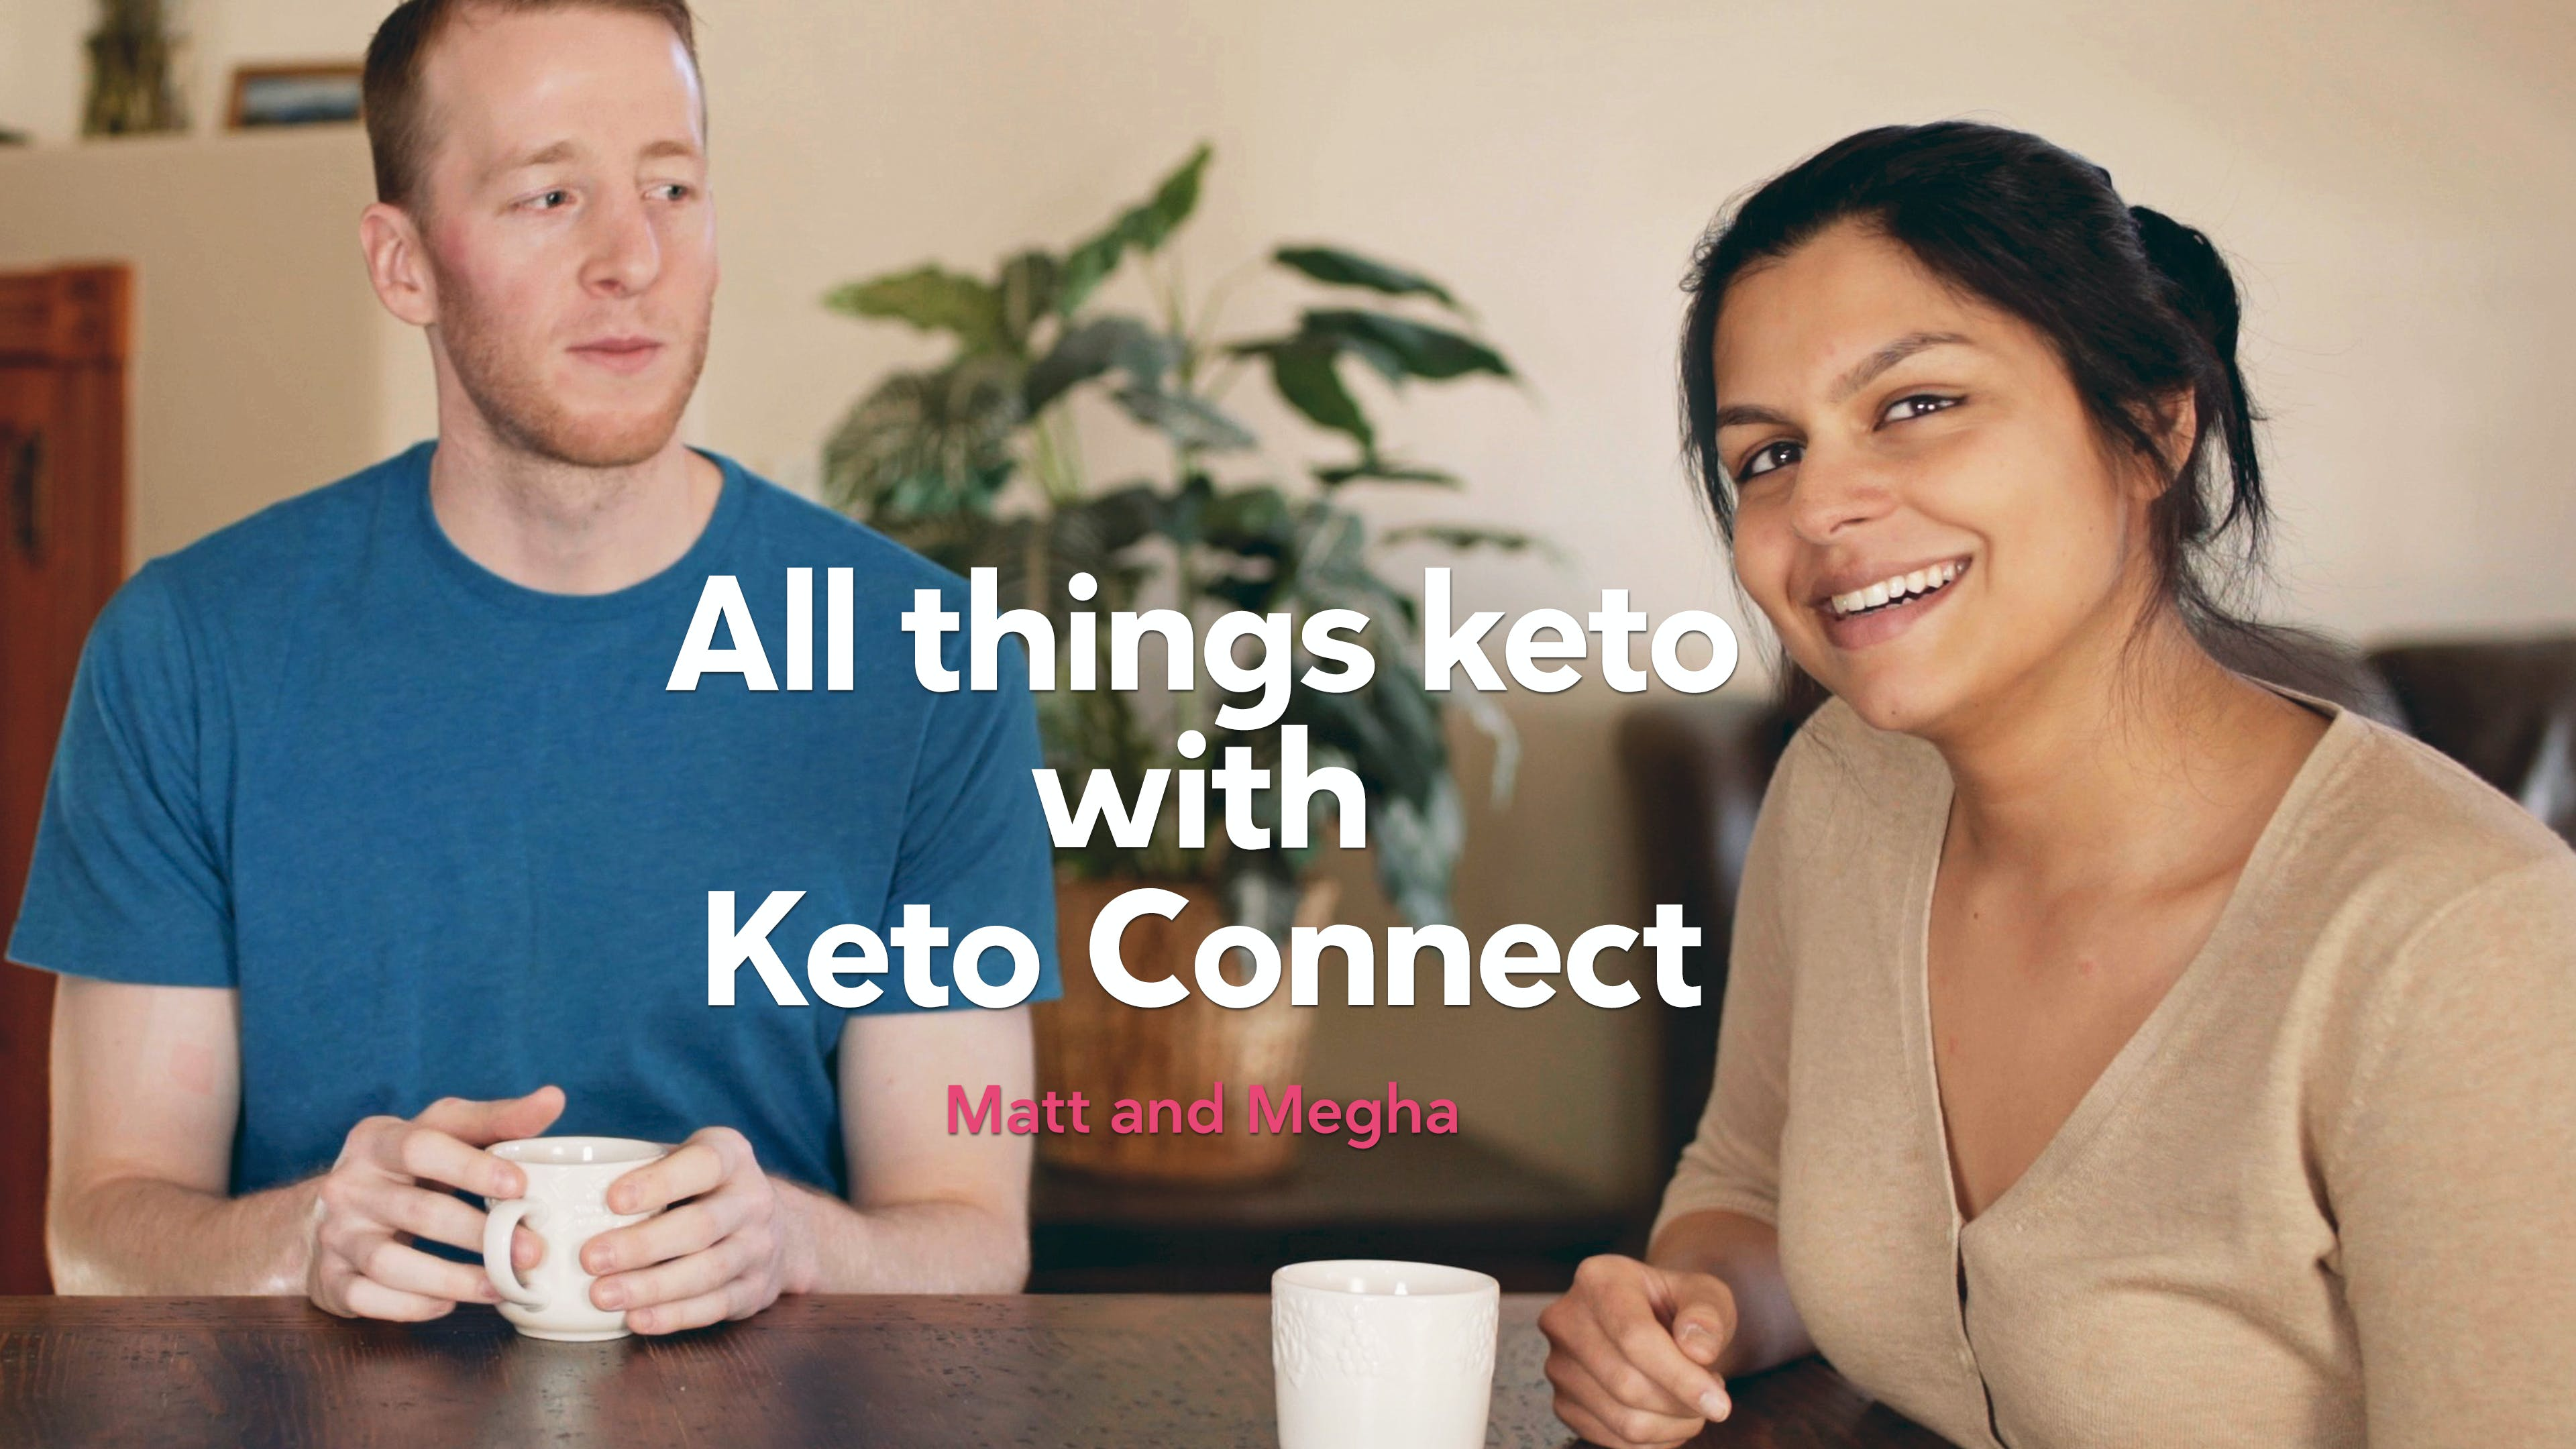 All things keto with Keto Connect